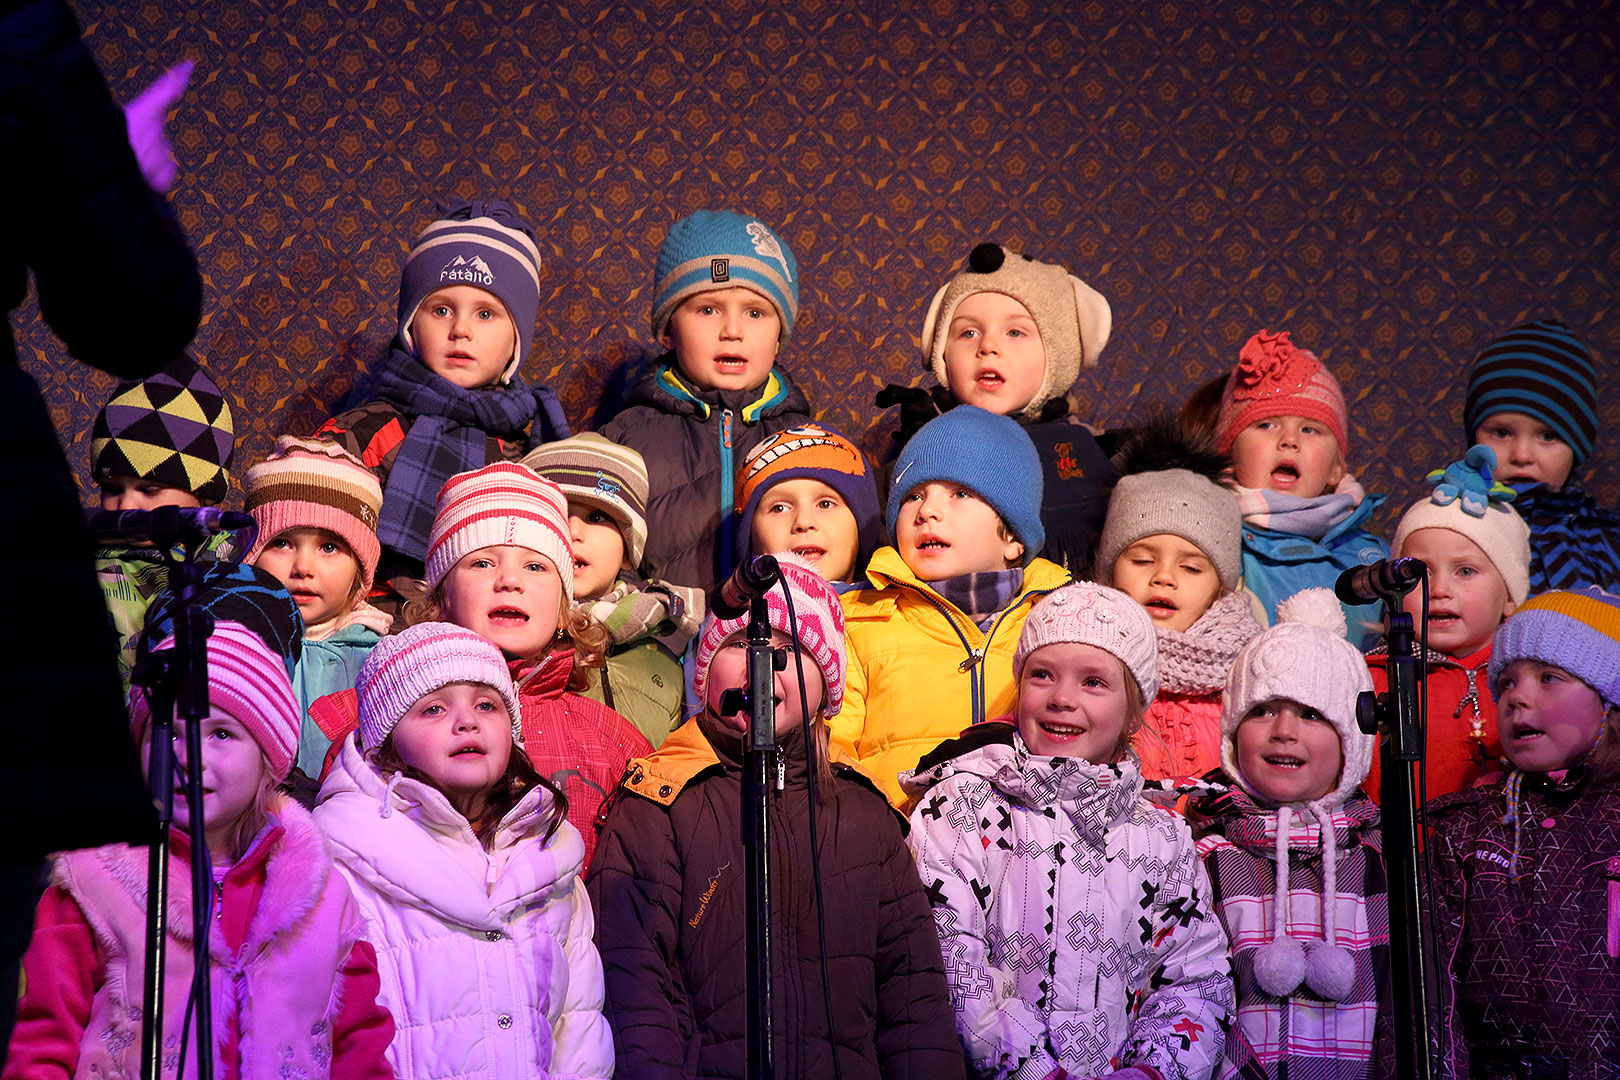 3rd Advent Sunday - Sing Along at the Christmas Tree, 15.12.2013